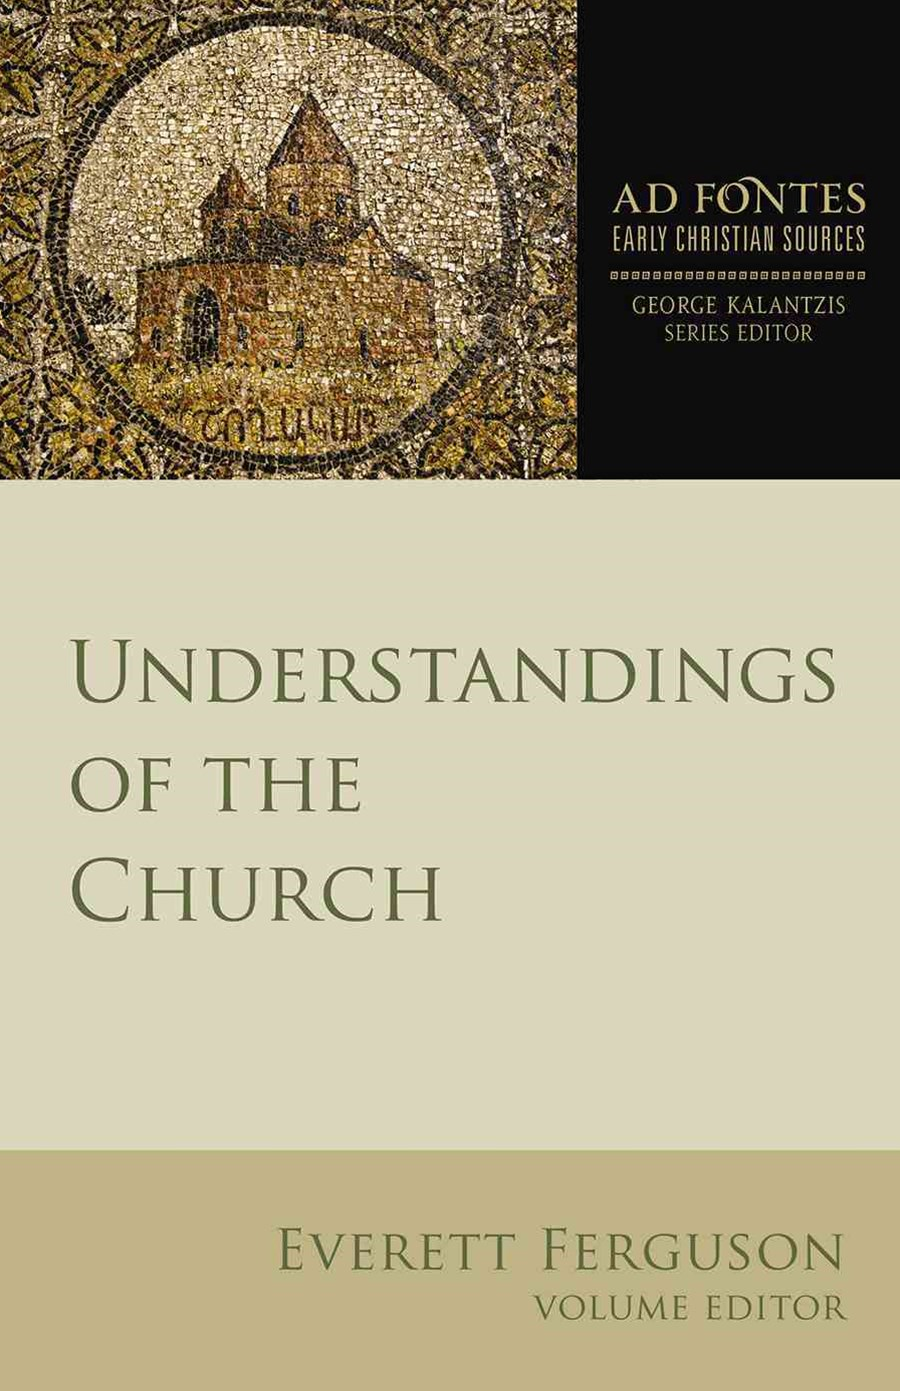 Understandings of the Church